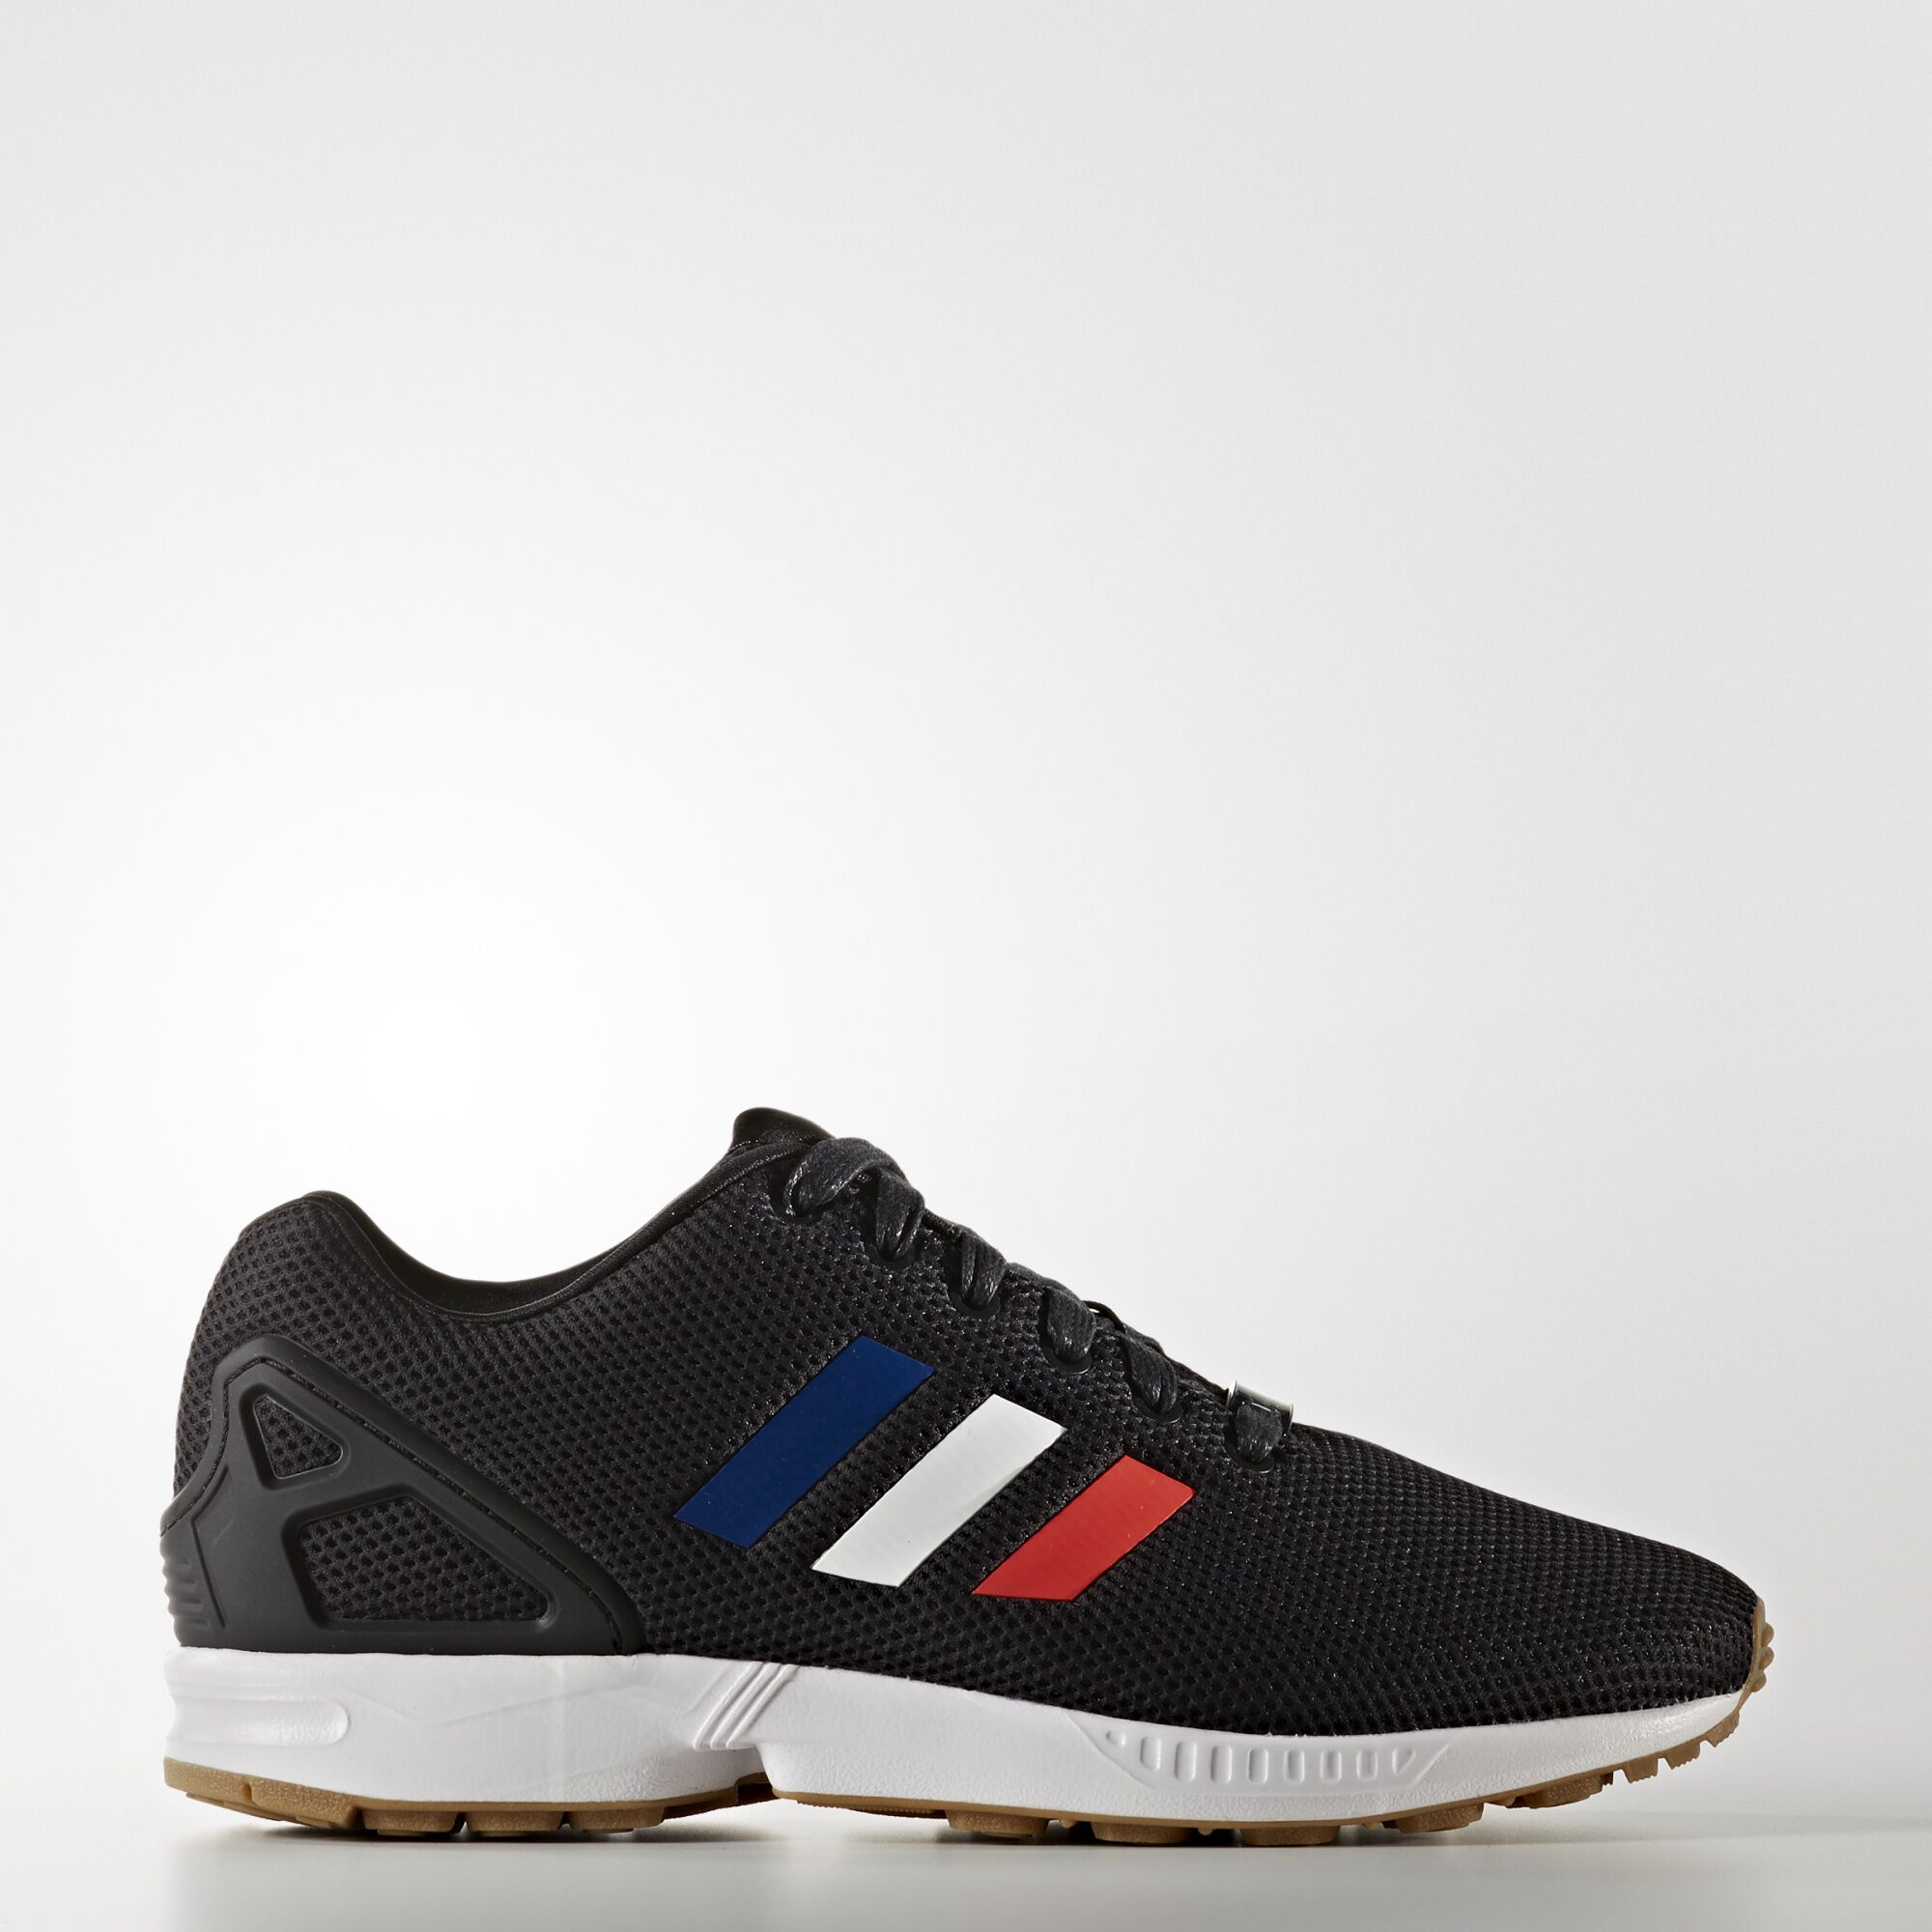 Adidas Flux Advanced